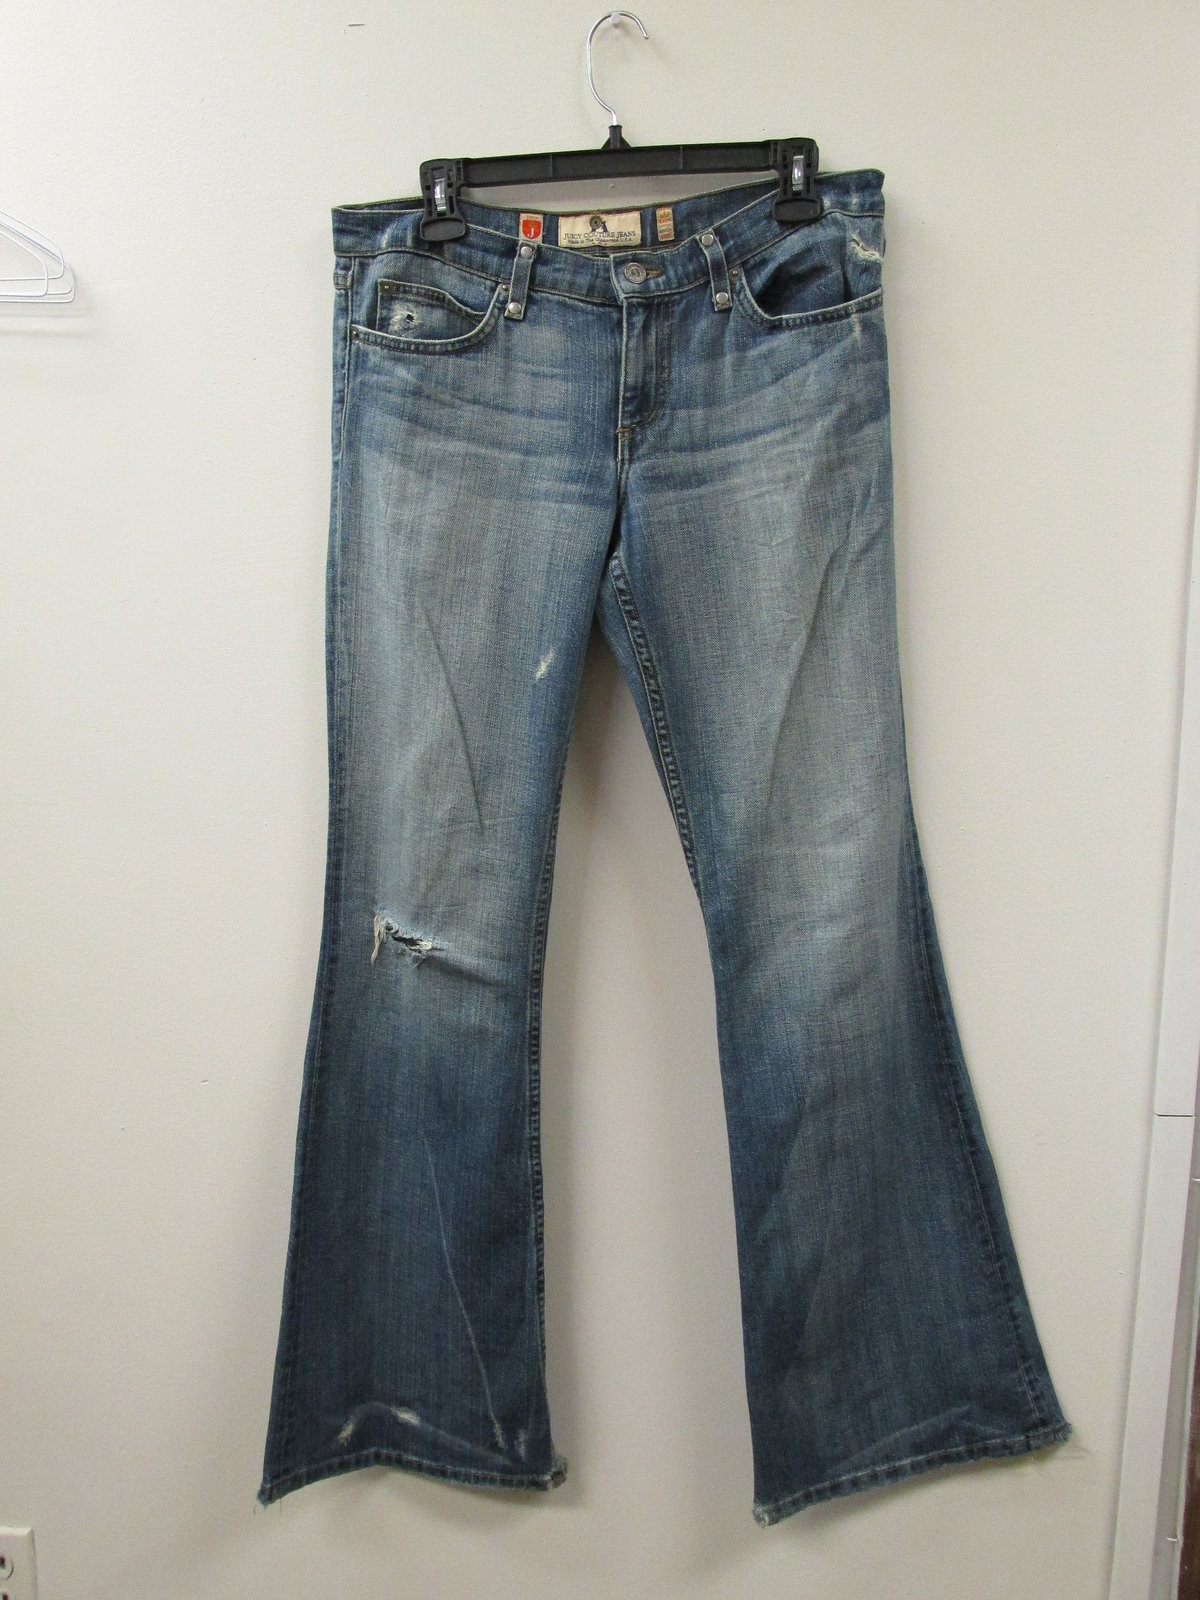 Vintage Flare Juicy Couture Jeans, Size 29